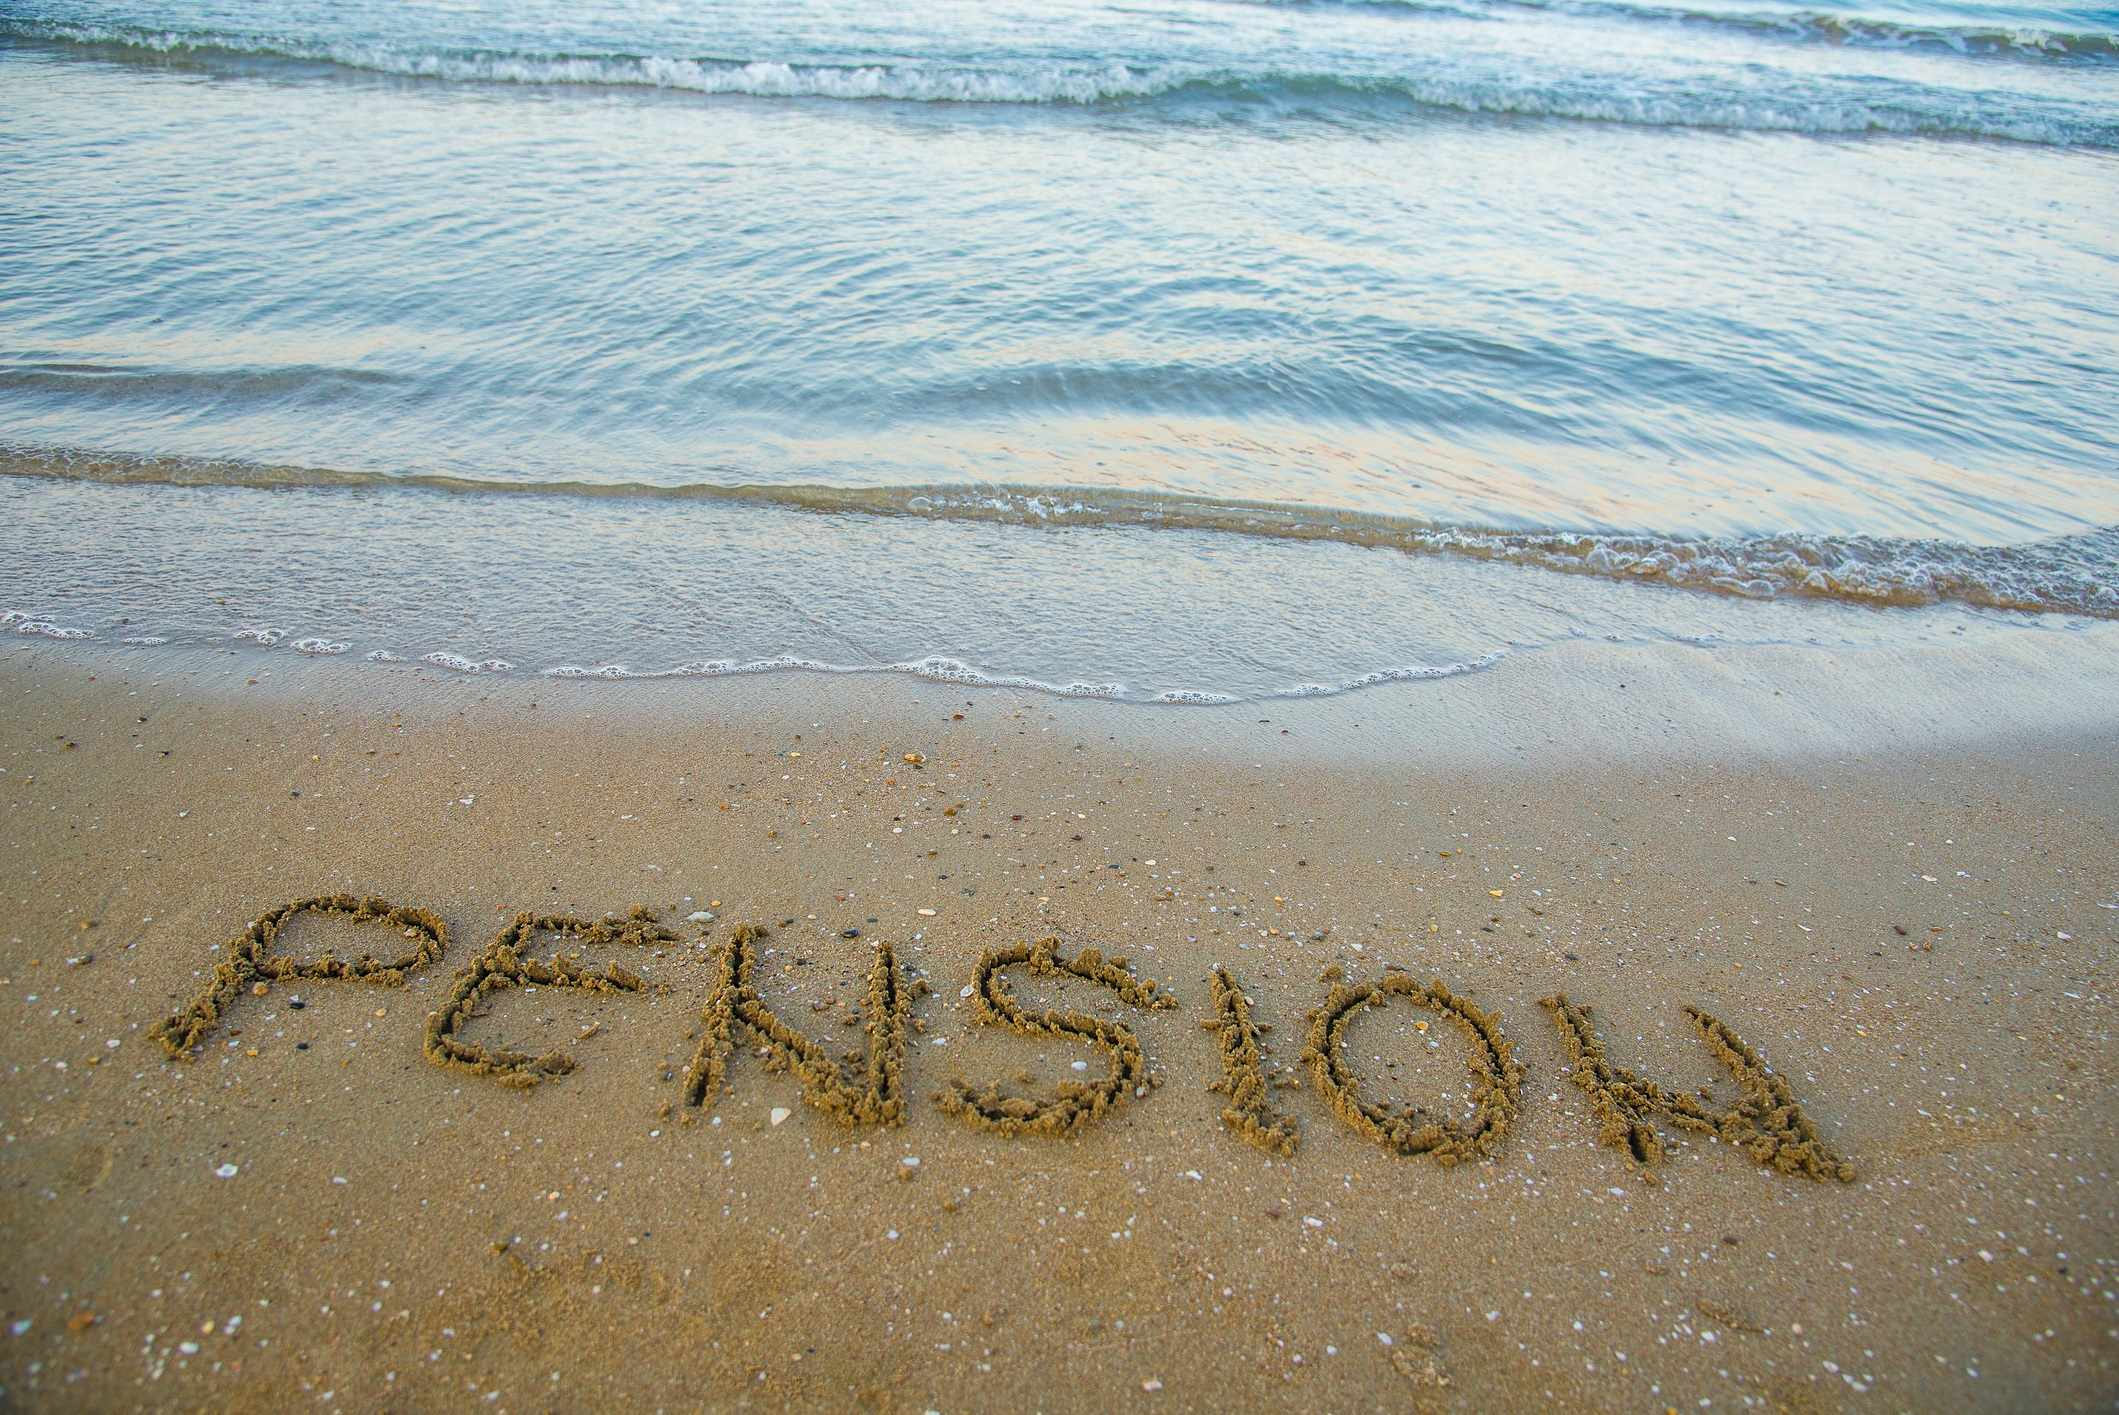 Pension written on sand by sea at beach